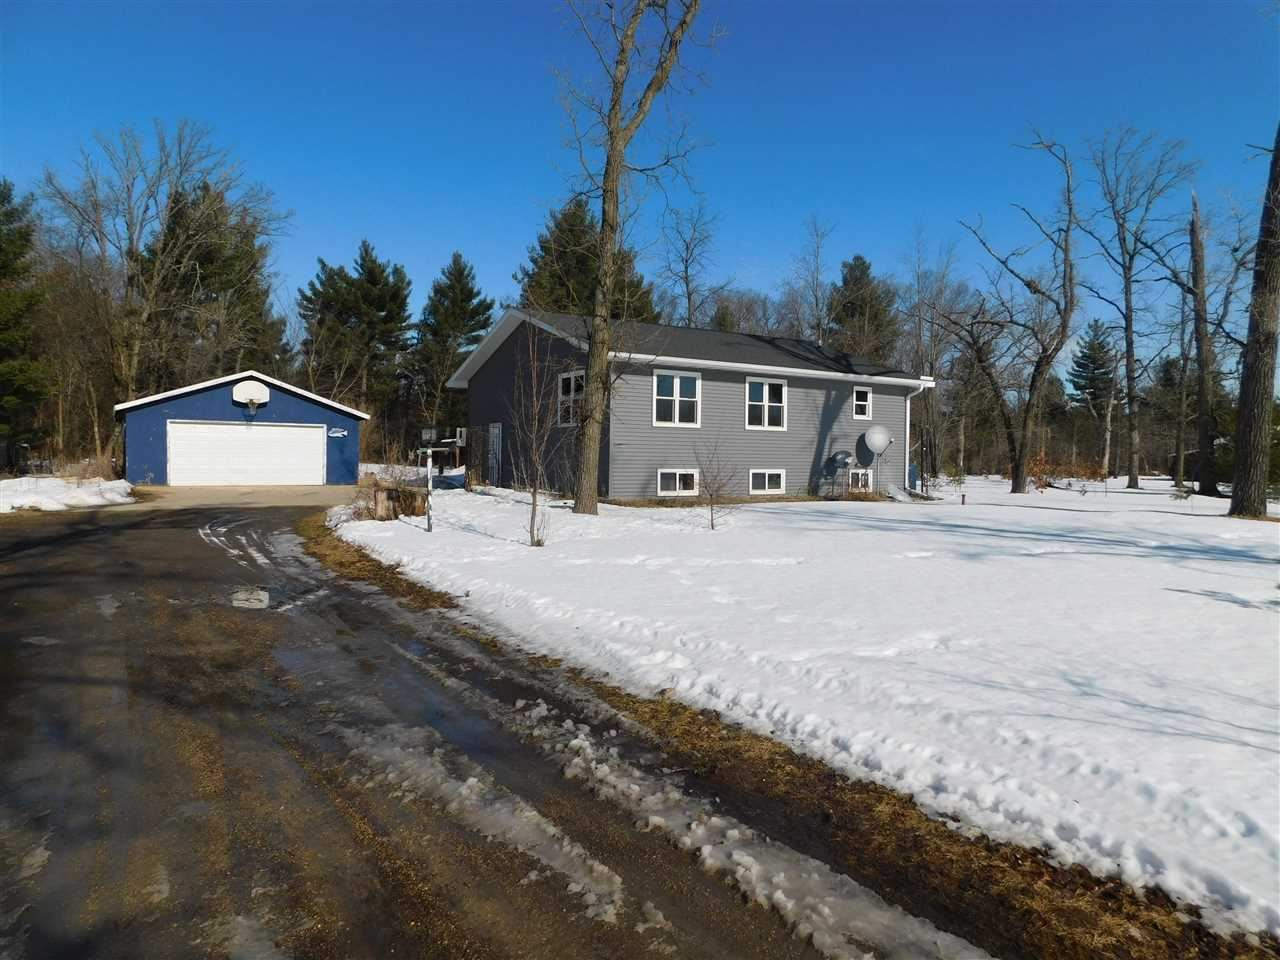 1192 Cottonville Ave, Friendship, WI 53934 - #: 1876001